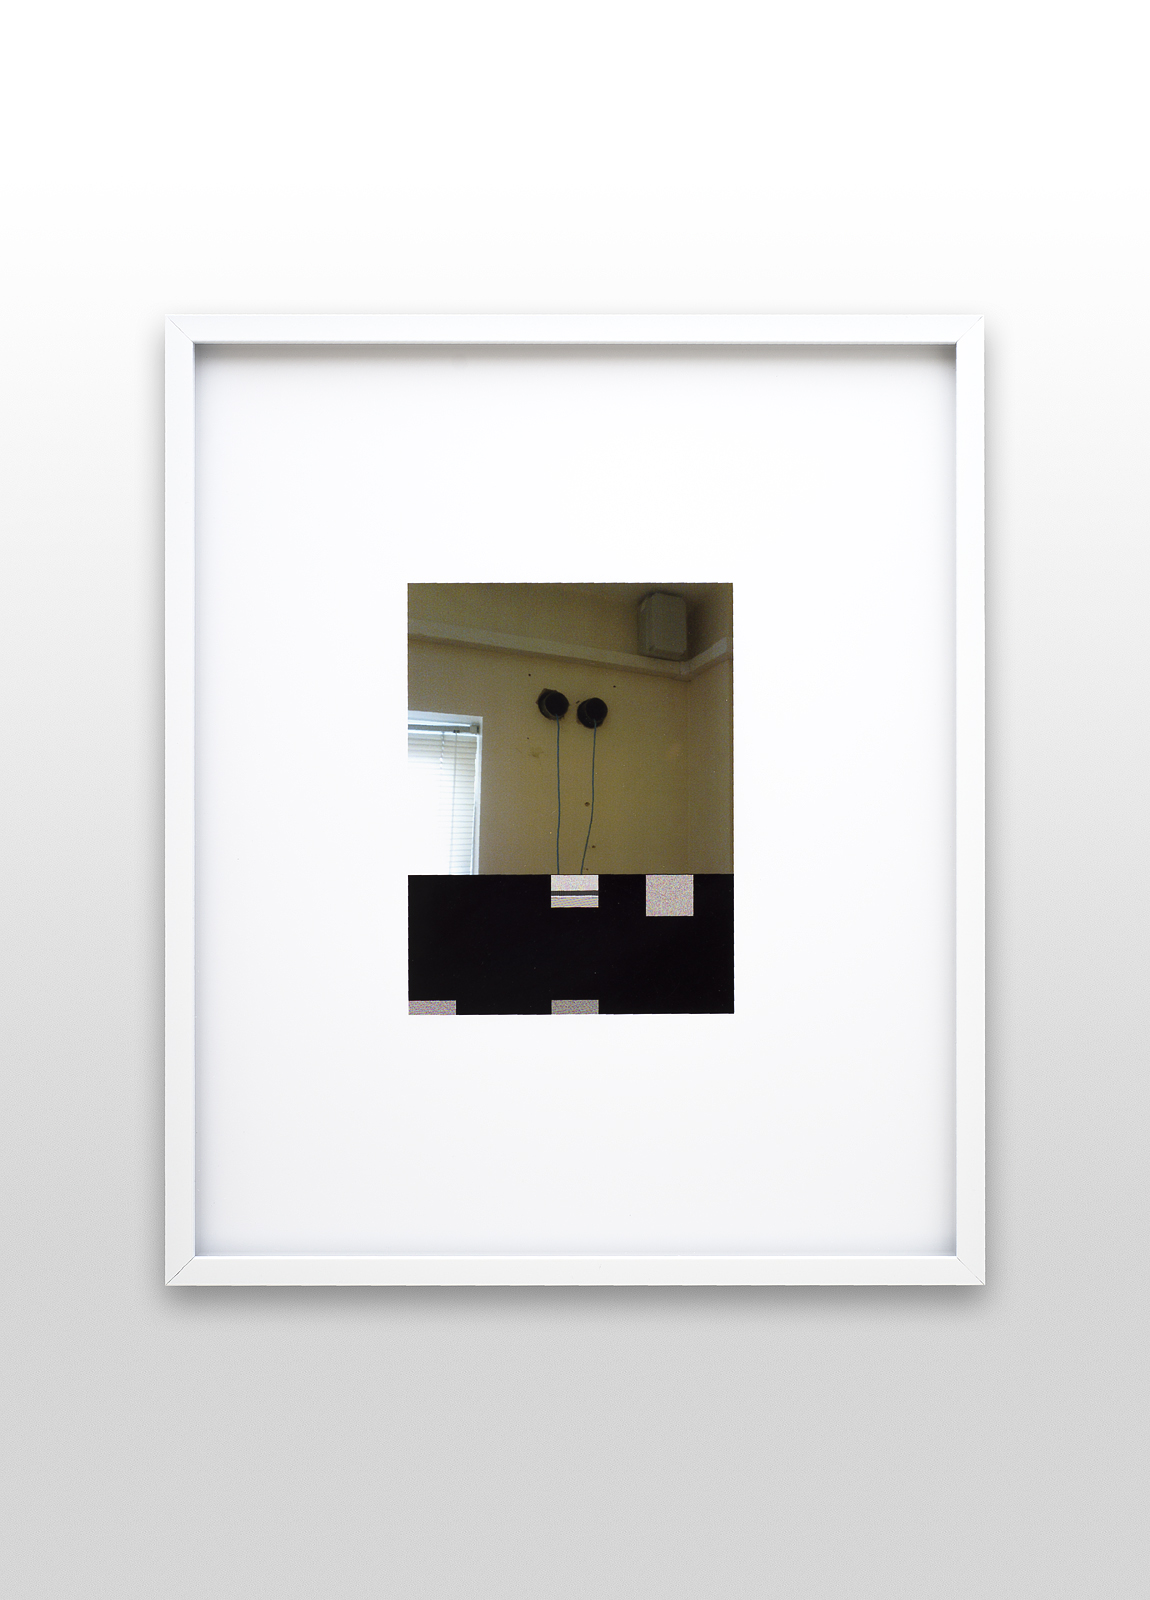 IMG1142 (wall pipes w_ wires), 2014